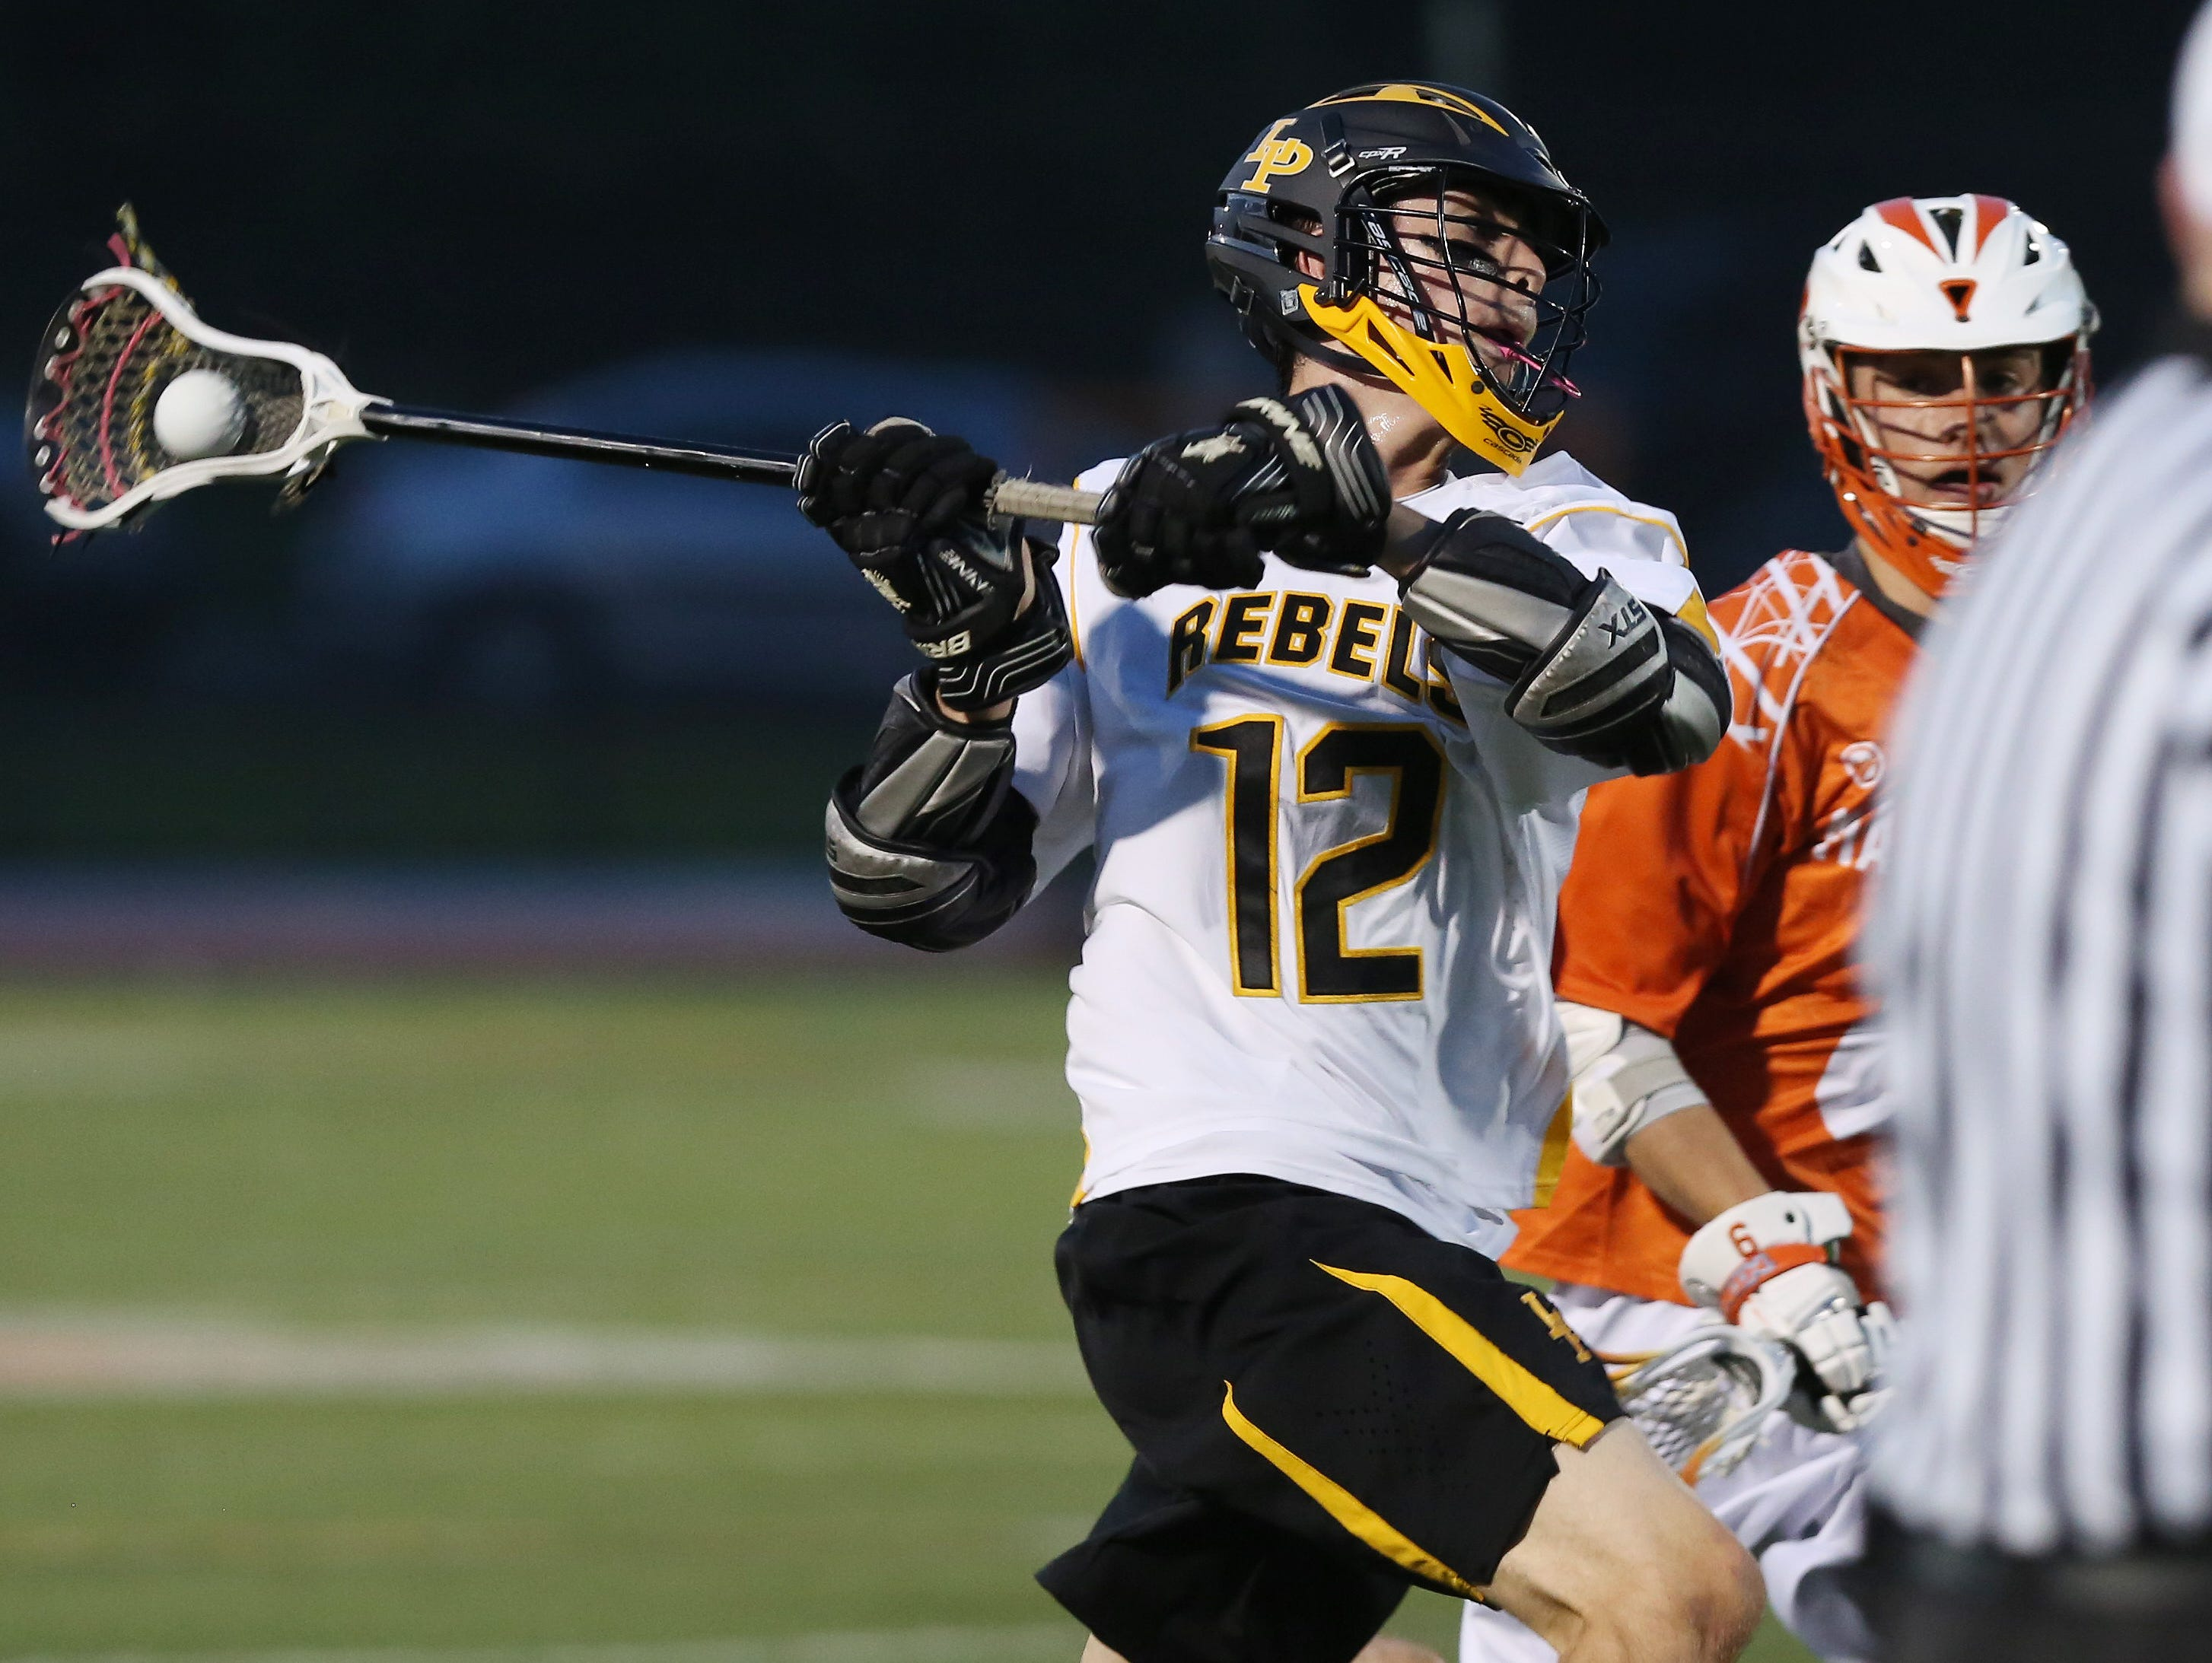 Lakeland/Panas' Drew Thompson (12) fires a shot against Mamaroneck for a first half goal during the Section 1 championship game at White Plains High School May 25, 2016.